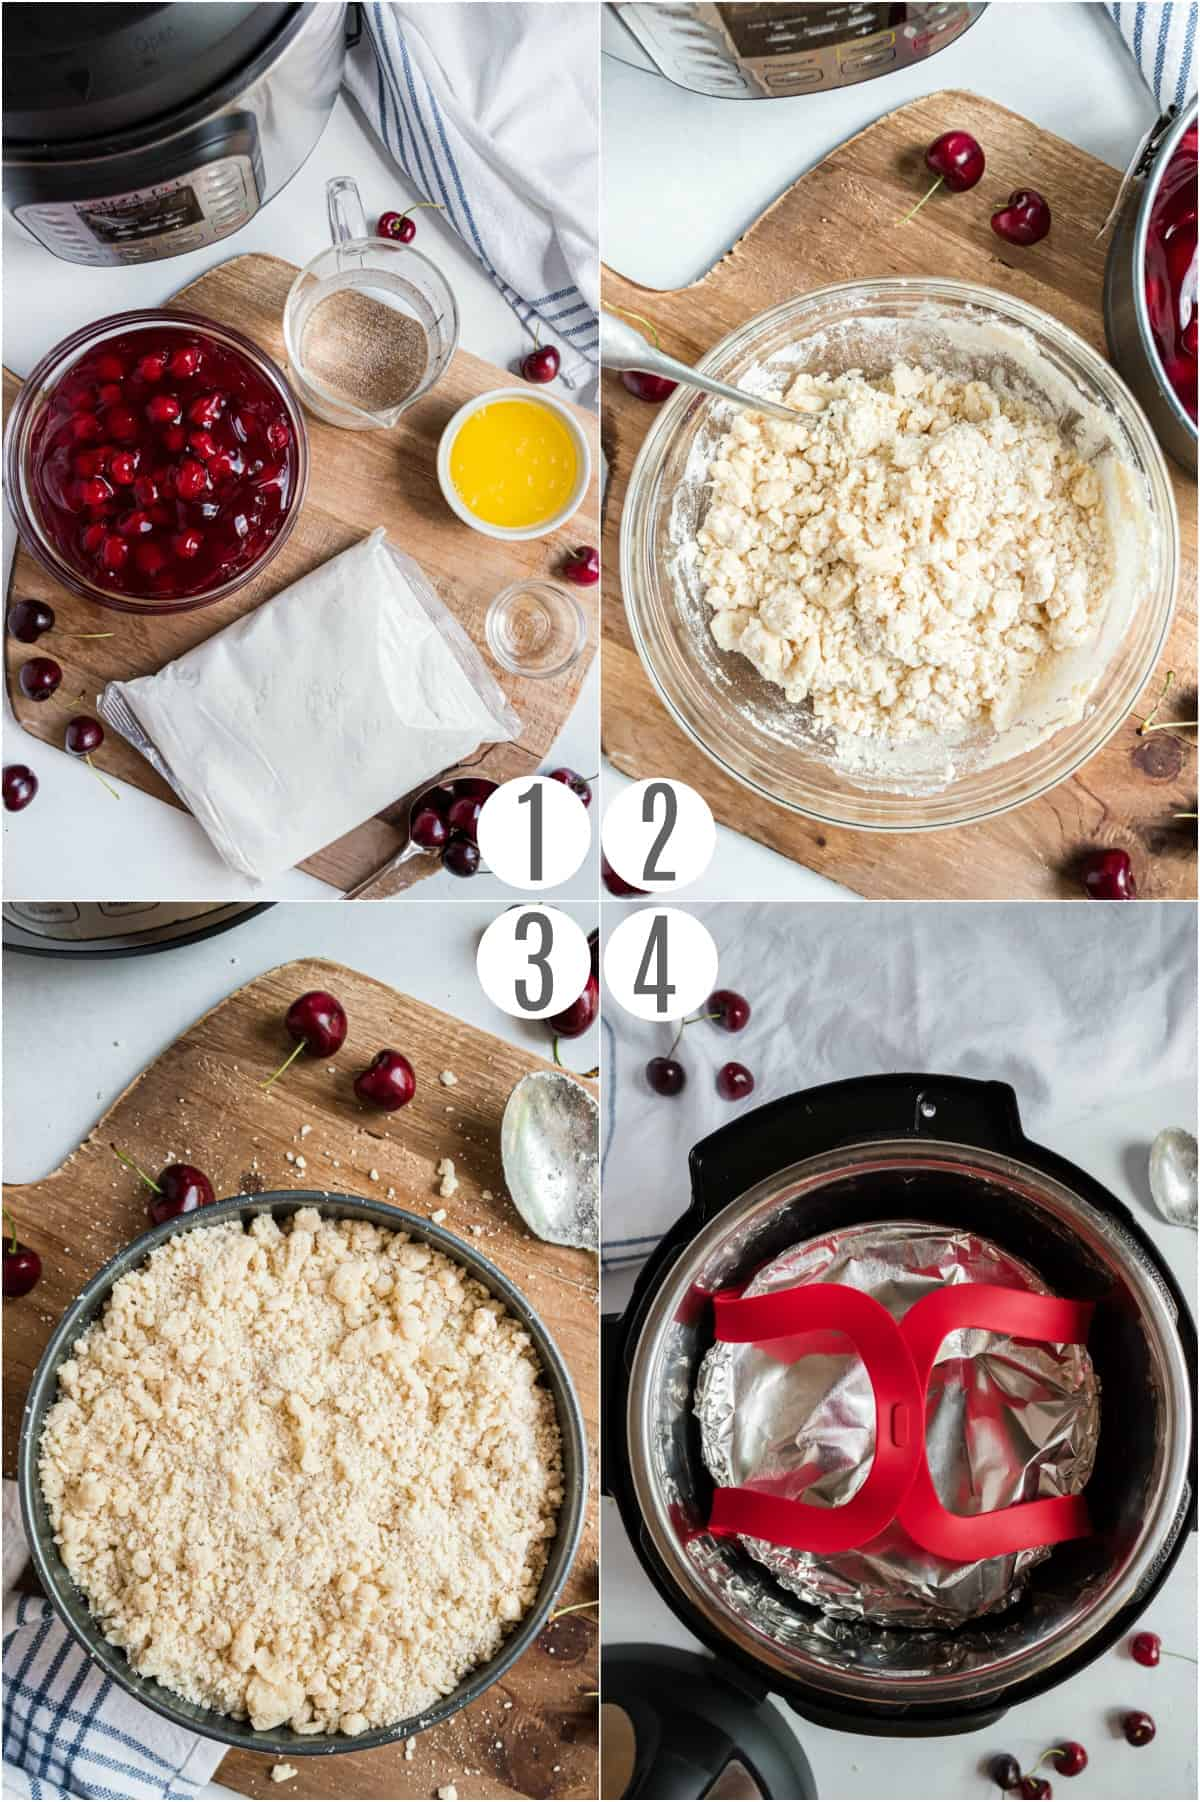 Step by step photos showing how to make cherry cobbler in the pressure cooker.